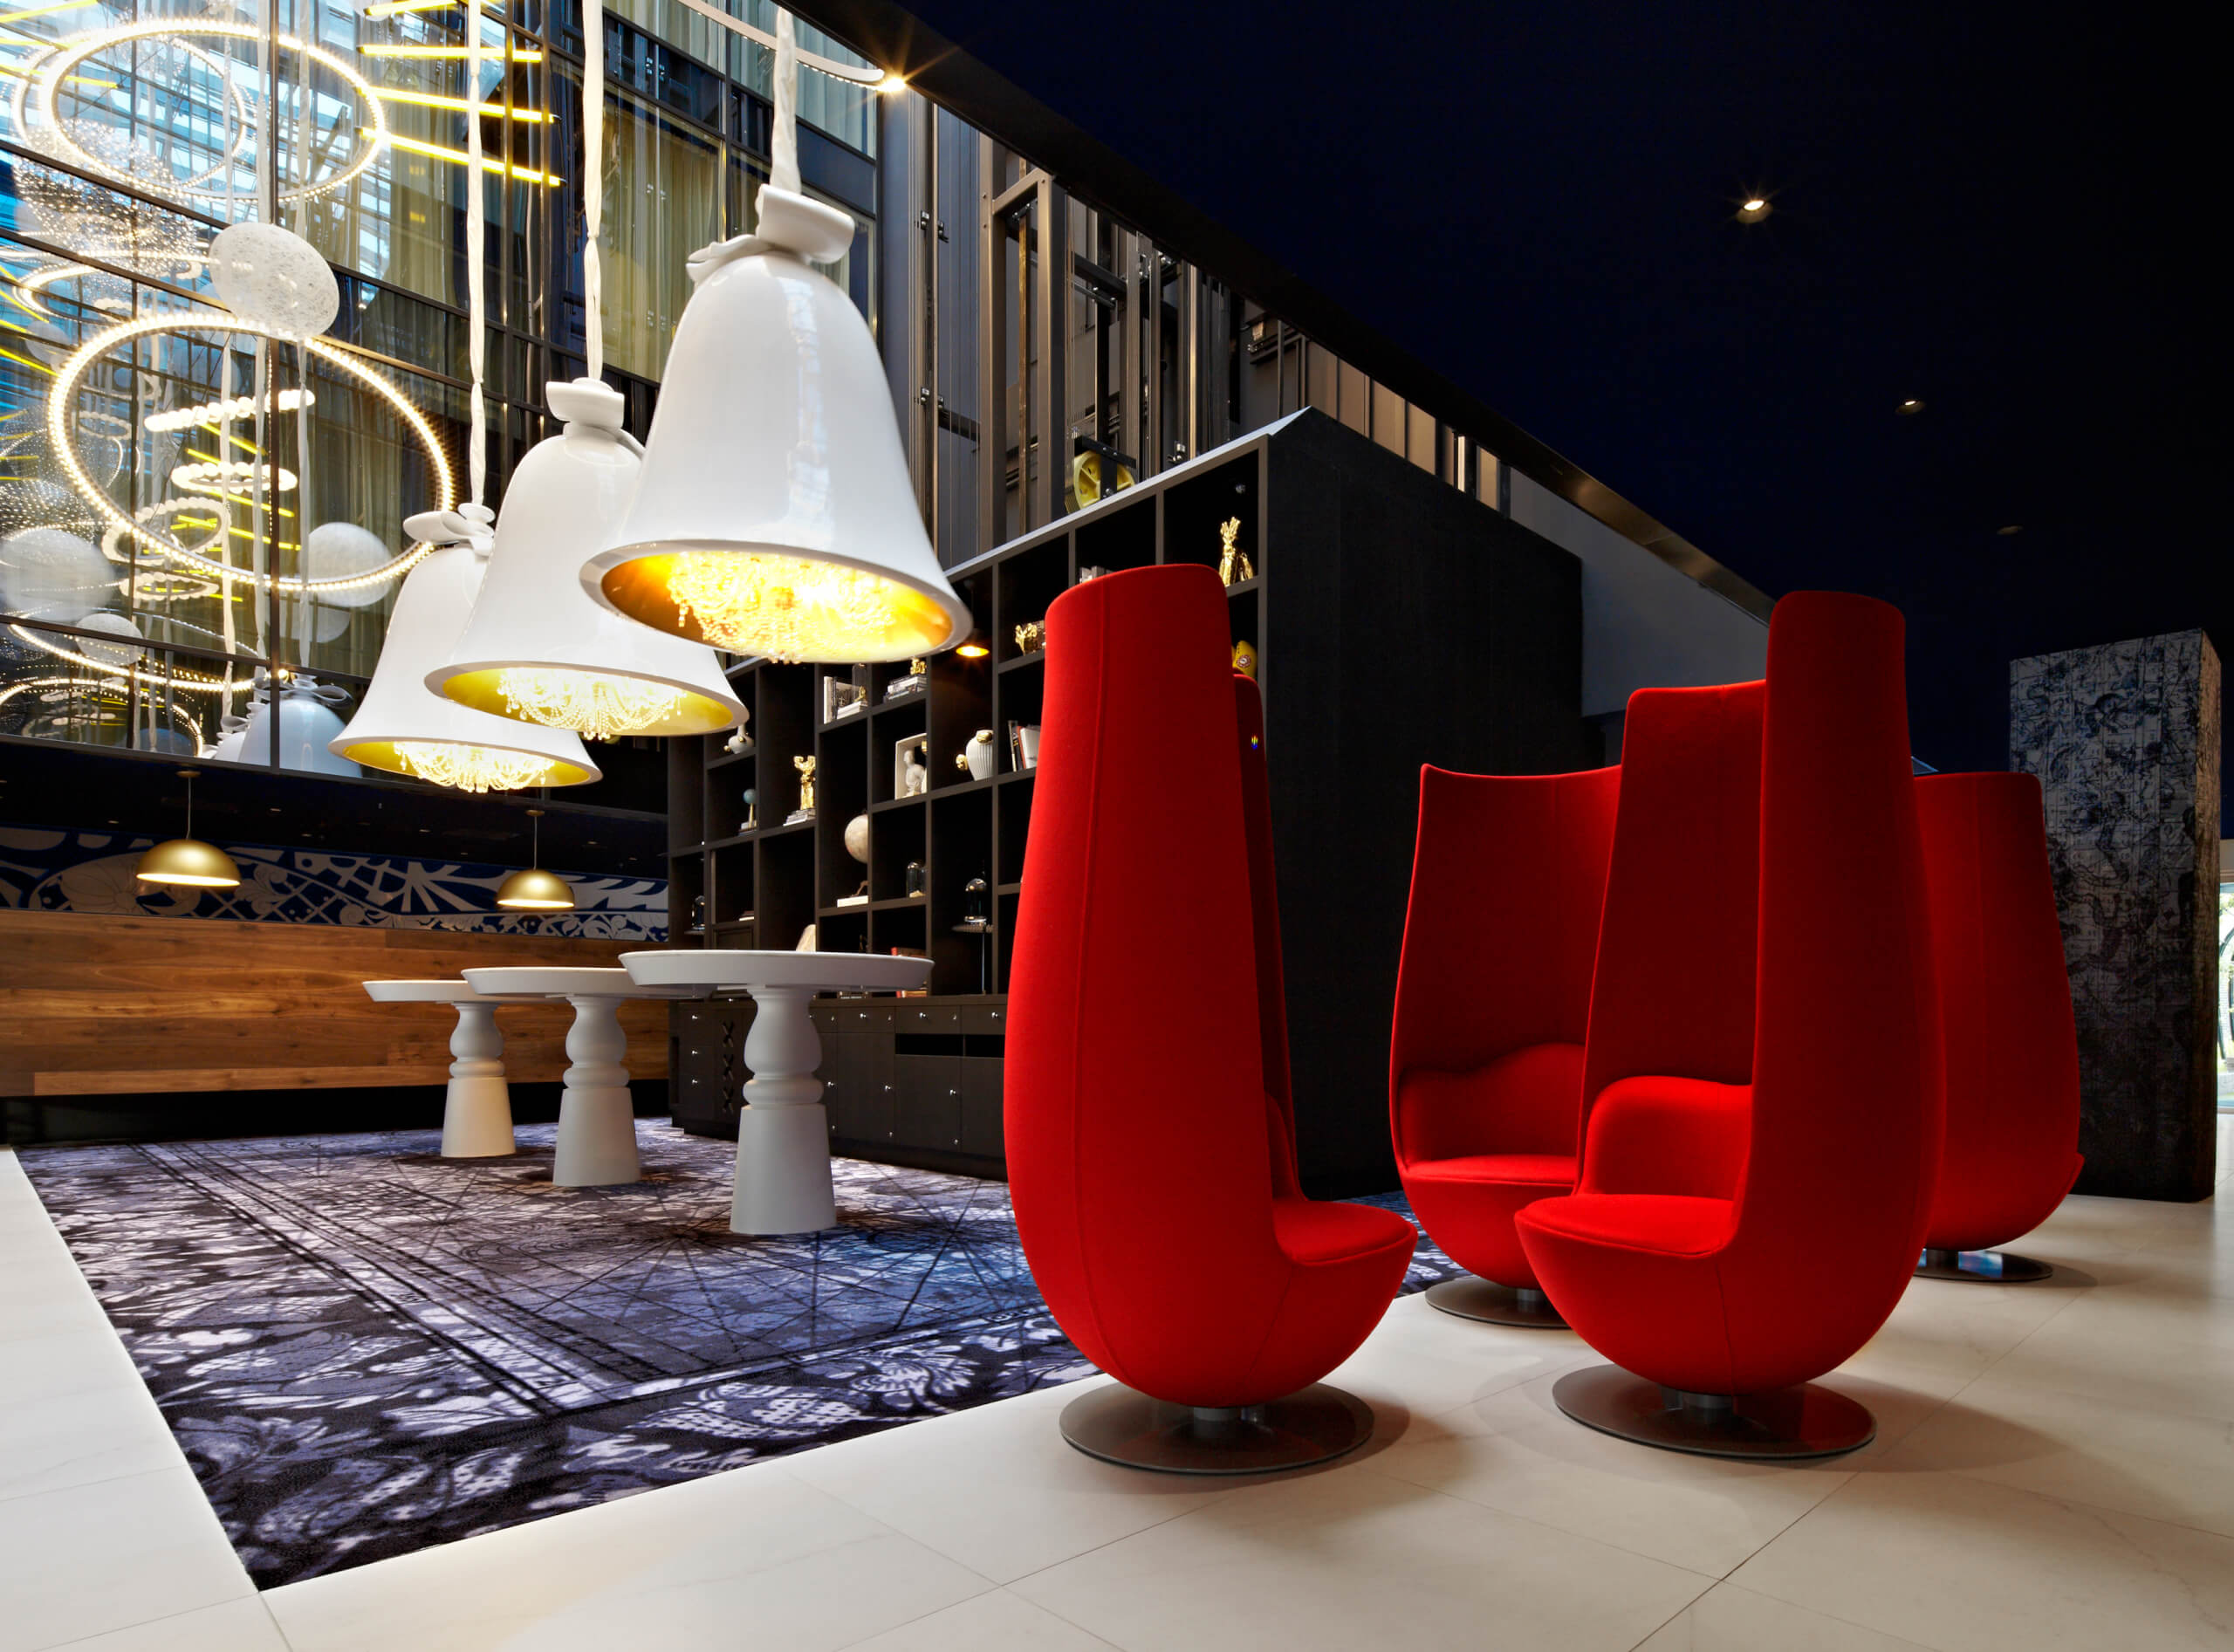 andaz, andaz hotel, amsterdam, high end, expensive, quirky, fun, cool, bedroom, suite, fish, wanders, lobby